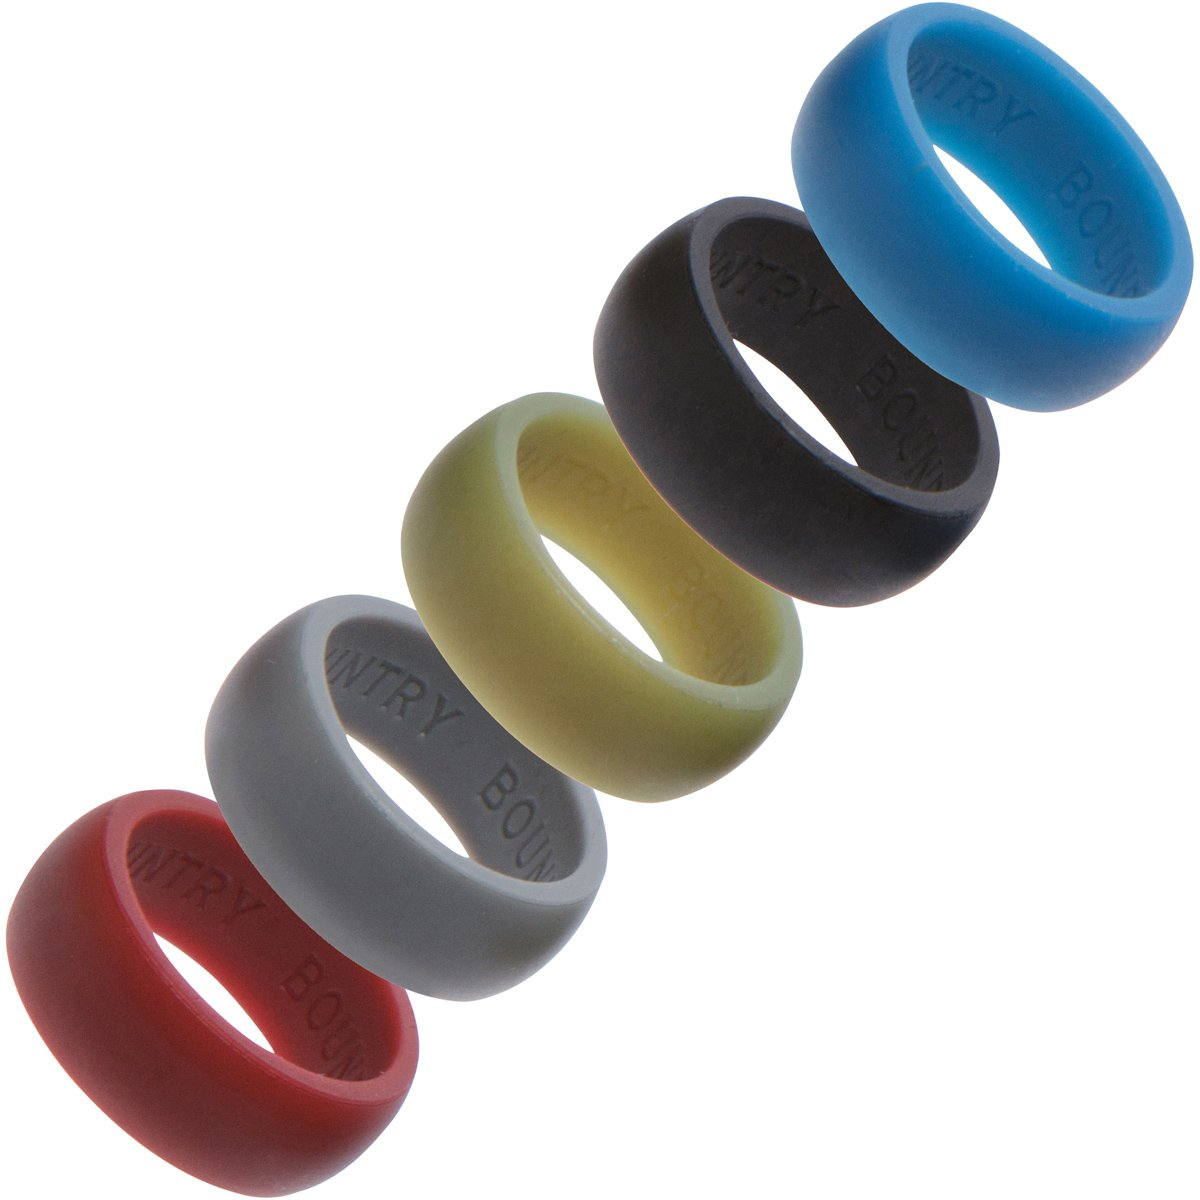 Amazon: Silicone Wedding Rings Wedding Band 5 Pack  For Active  Lifestyles, Gym & Outdoor Enthusiasts, Mens Silicone Wedding Band  Safe,  Hypoallergenic